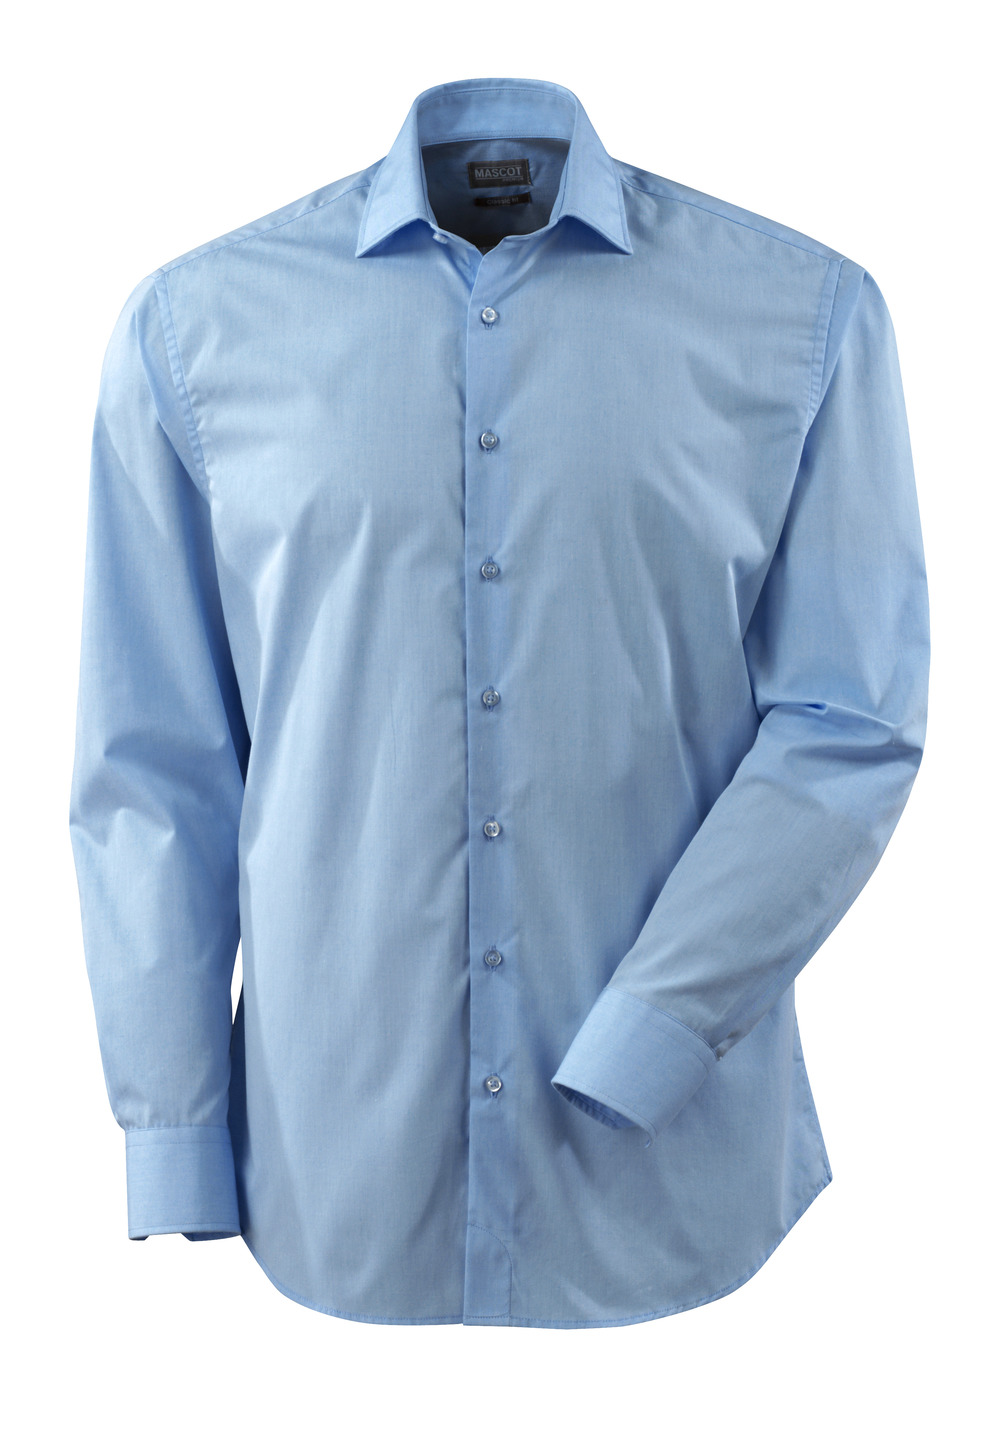 50631-984-71 Shirt - light blue